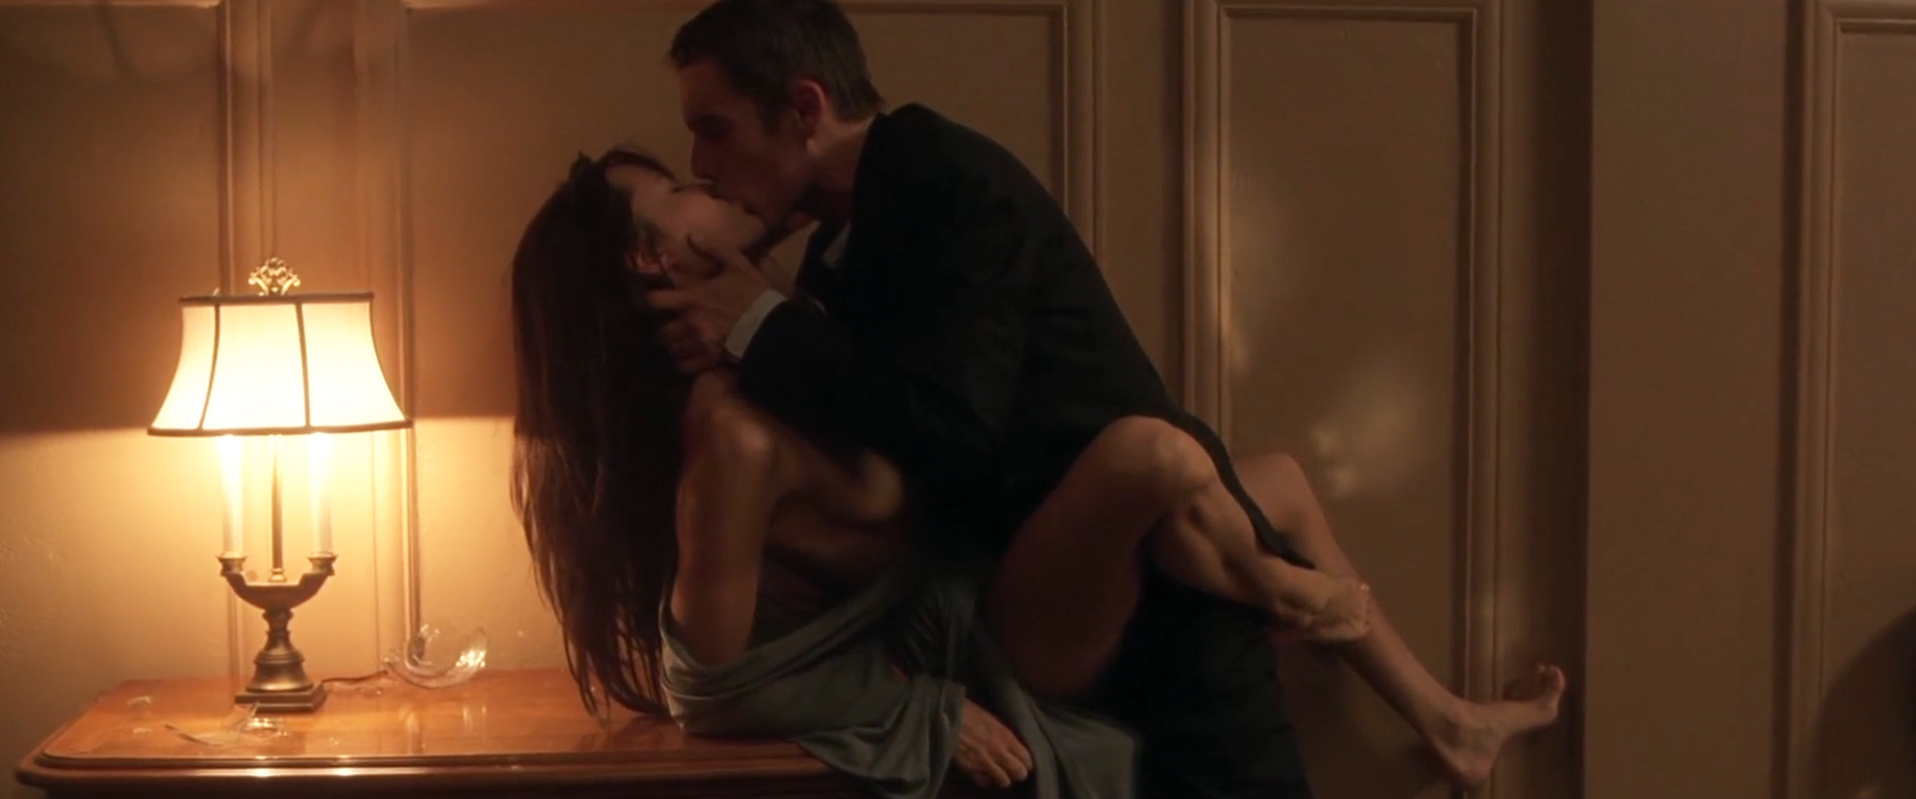 Seems excellent Angelina jolie taking lives sex scene final, sorry